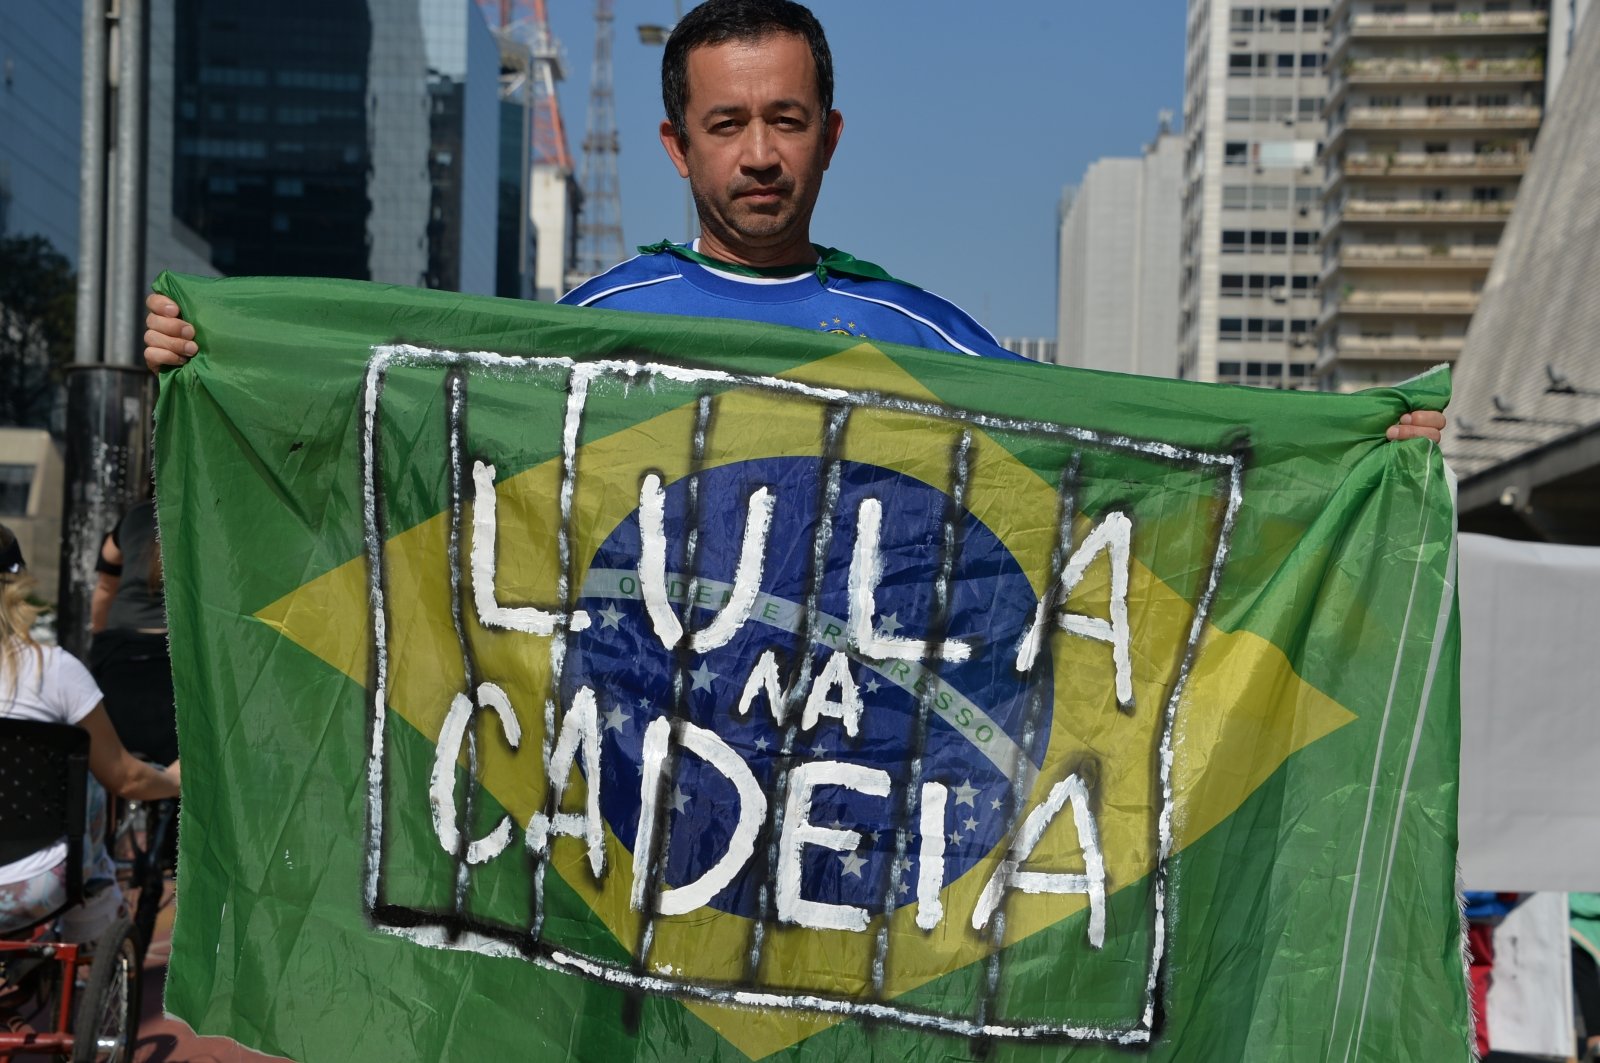 Anti-government protest in Brazil